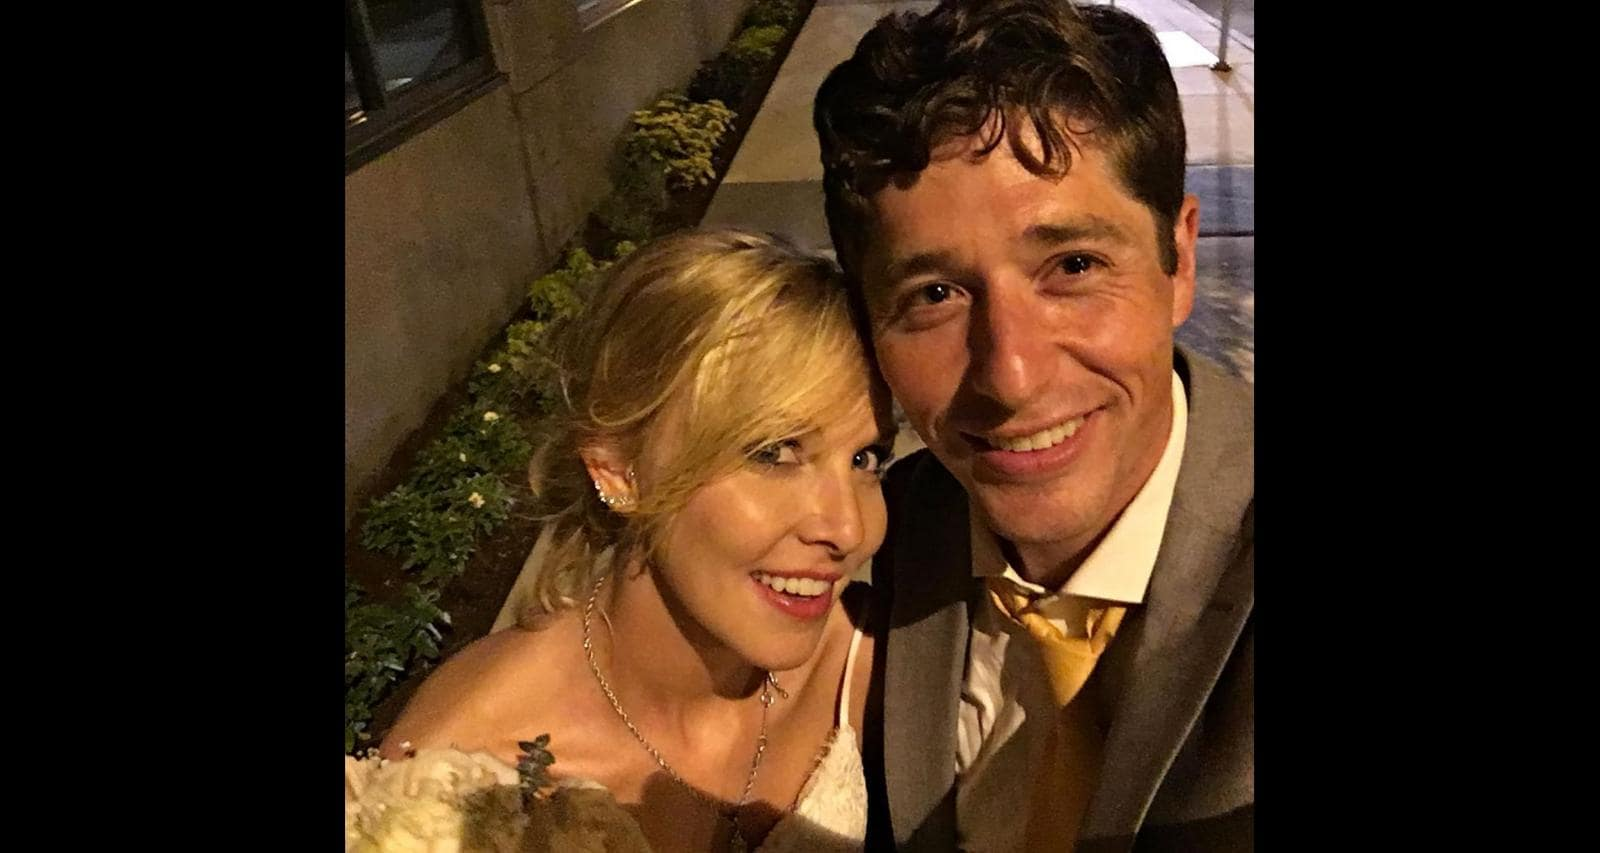 Sarah Clarke Wiki, Age, Family, Education, Career, Lobbyist, Wedding and Facts About Minneapolis Mayor, Jacob Frey's Wife